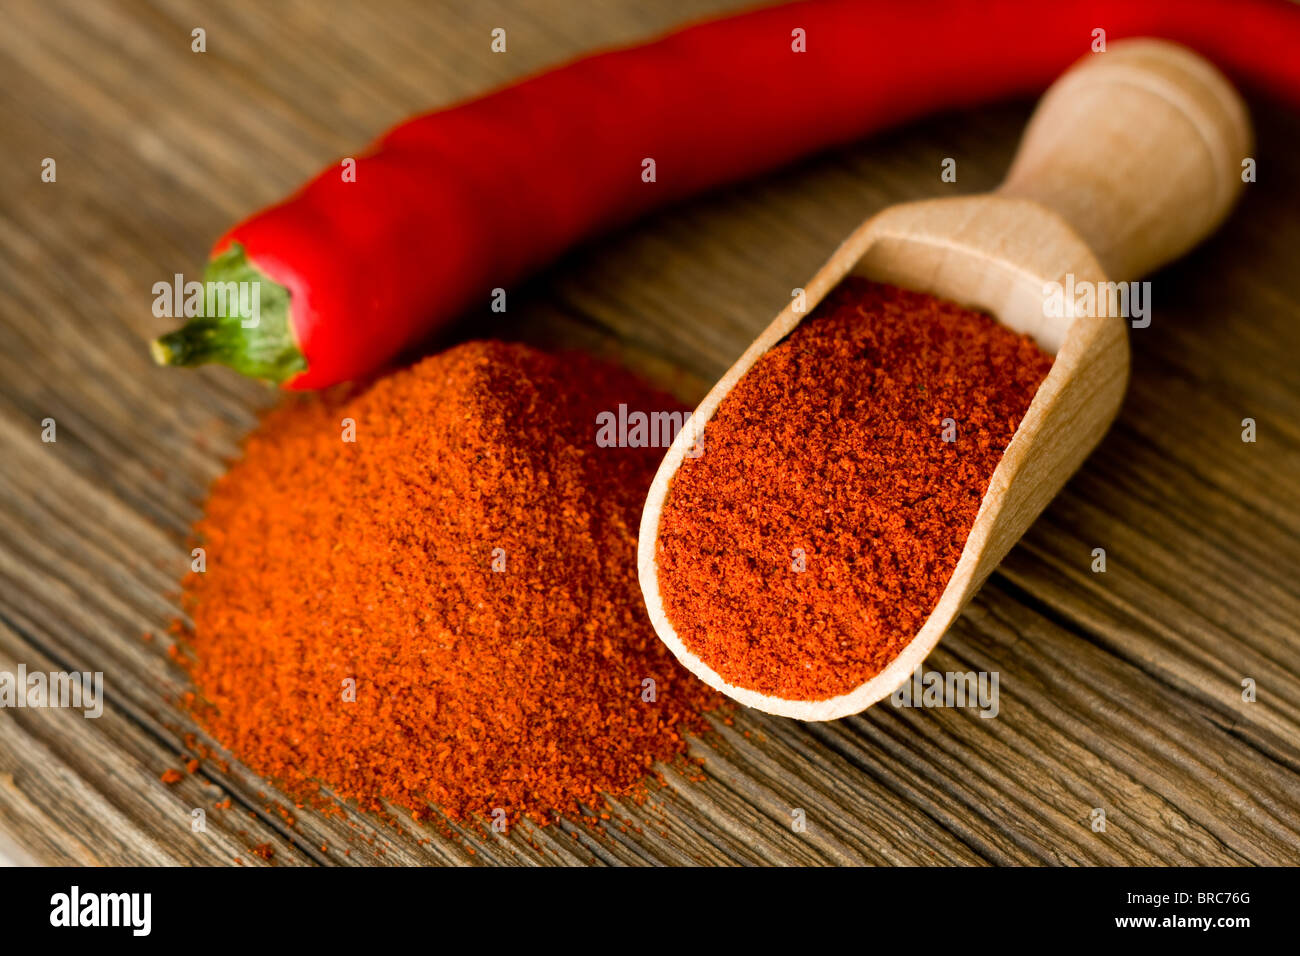 Red hot paprika powder on wooden spoon - Stock Image